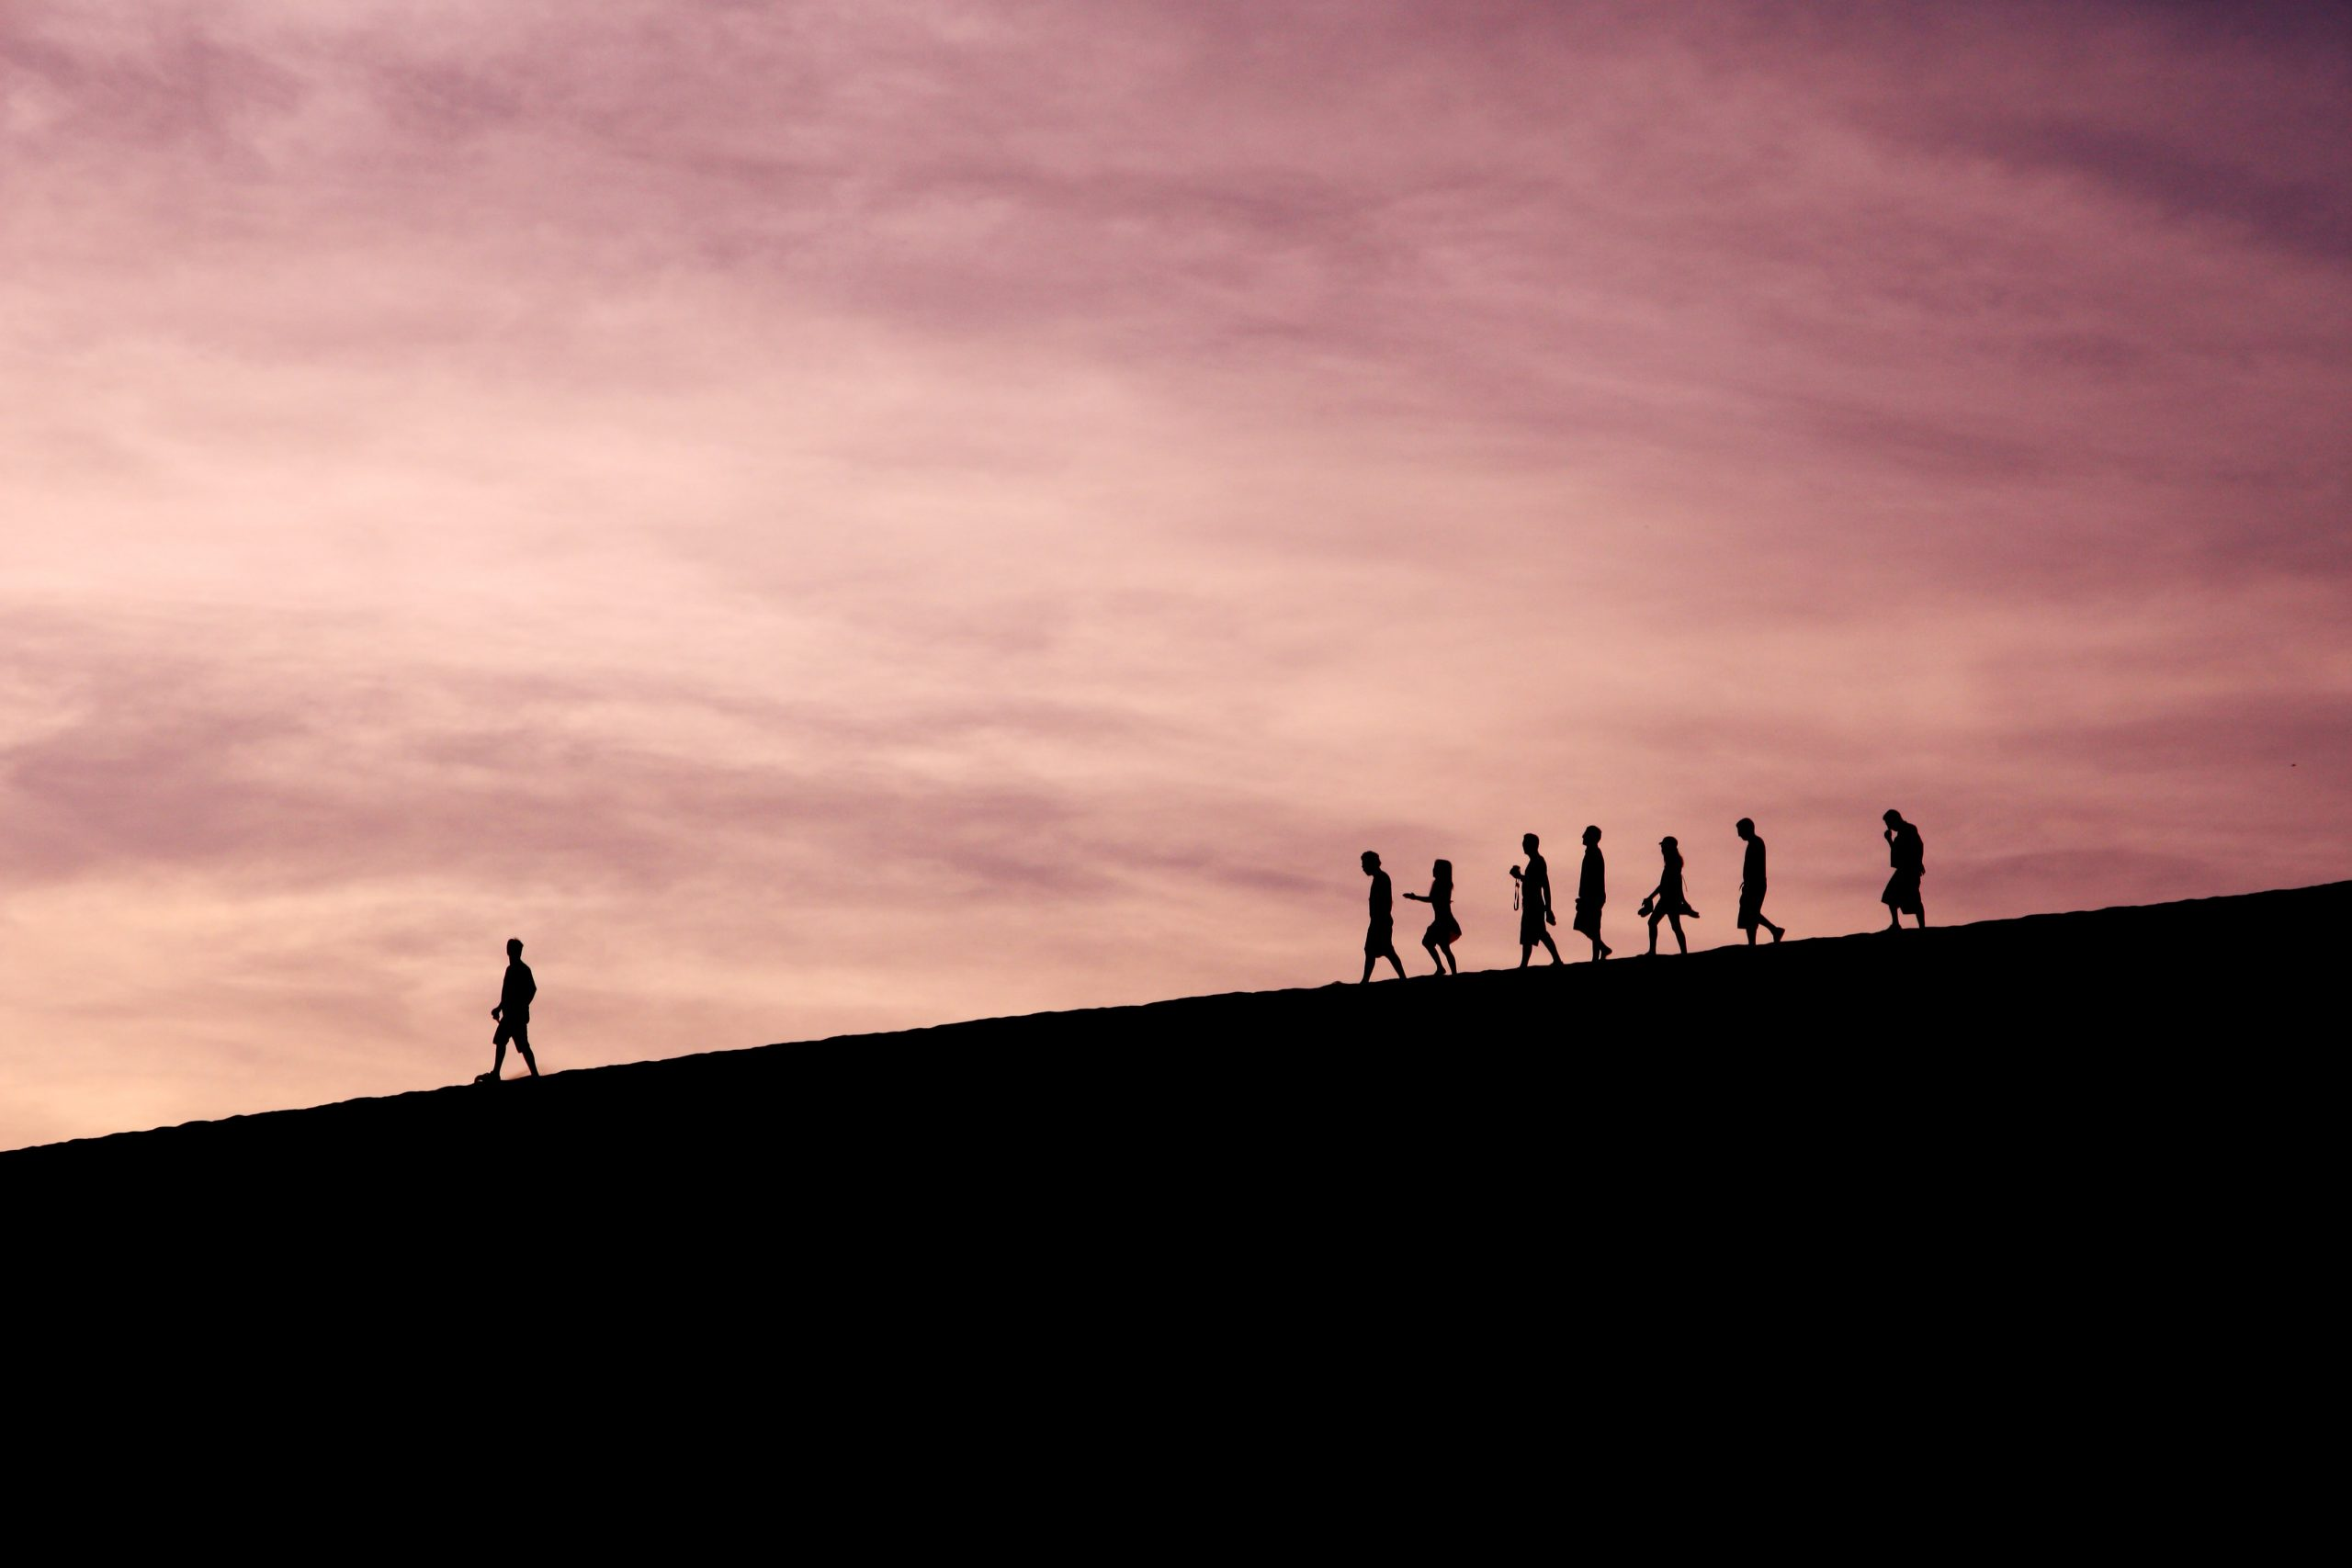 [Test] The Importance of Collective Leadership